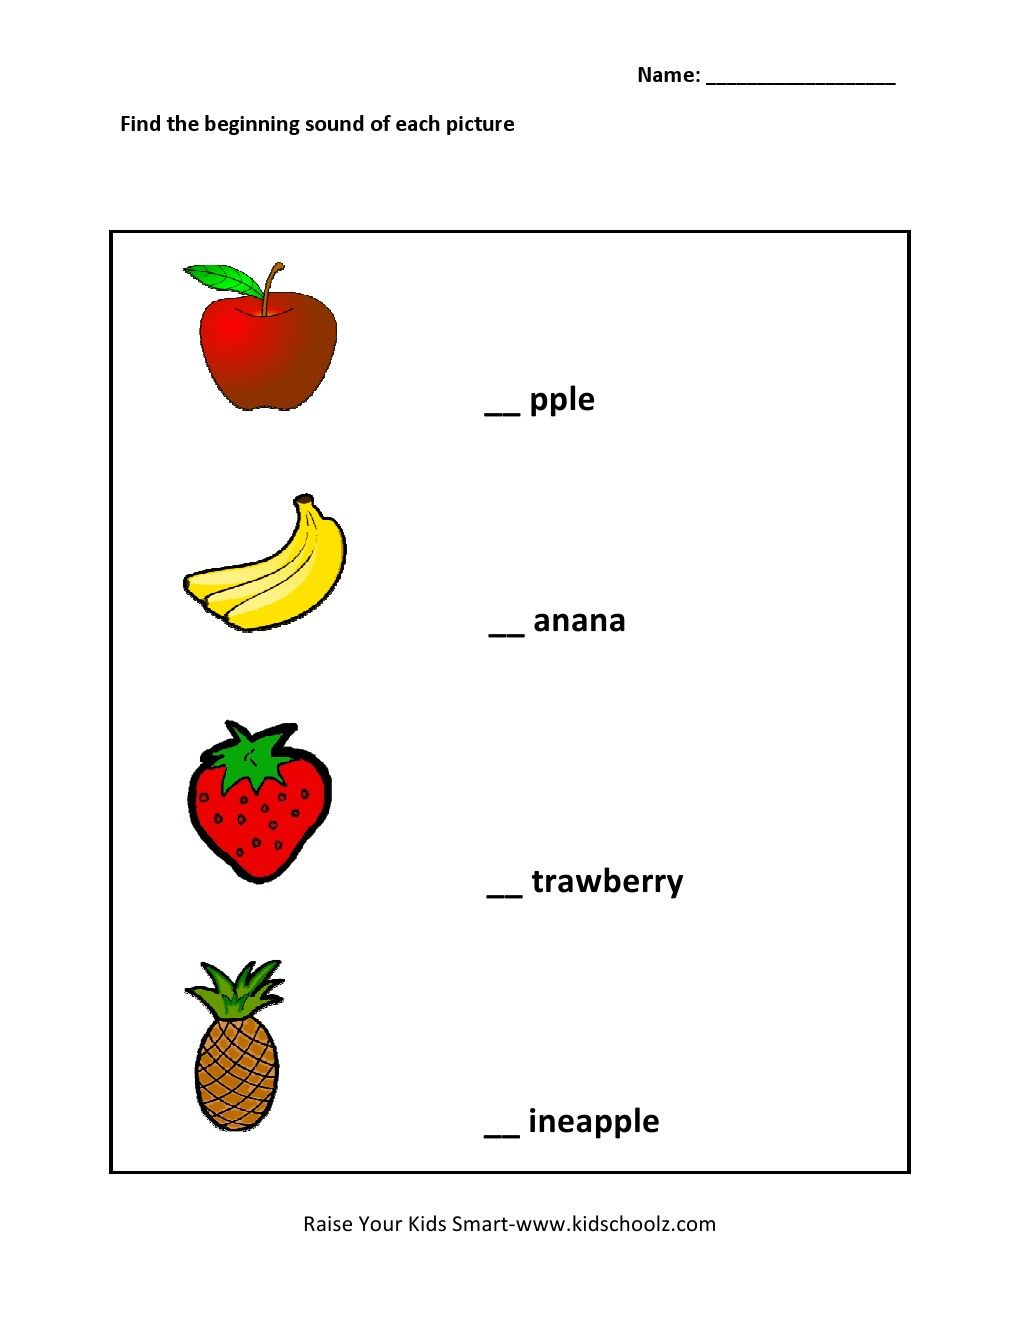 grade 1 worksheet - Yahoo Image Search Results | summer school ...